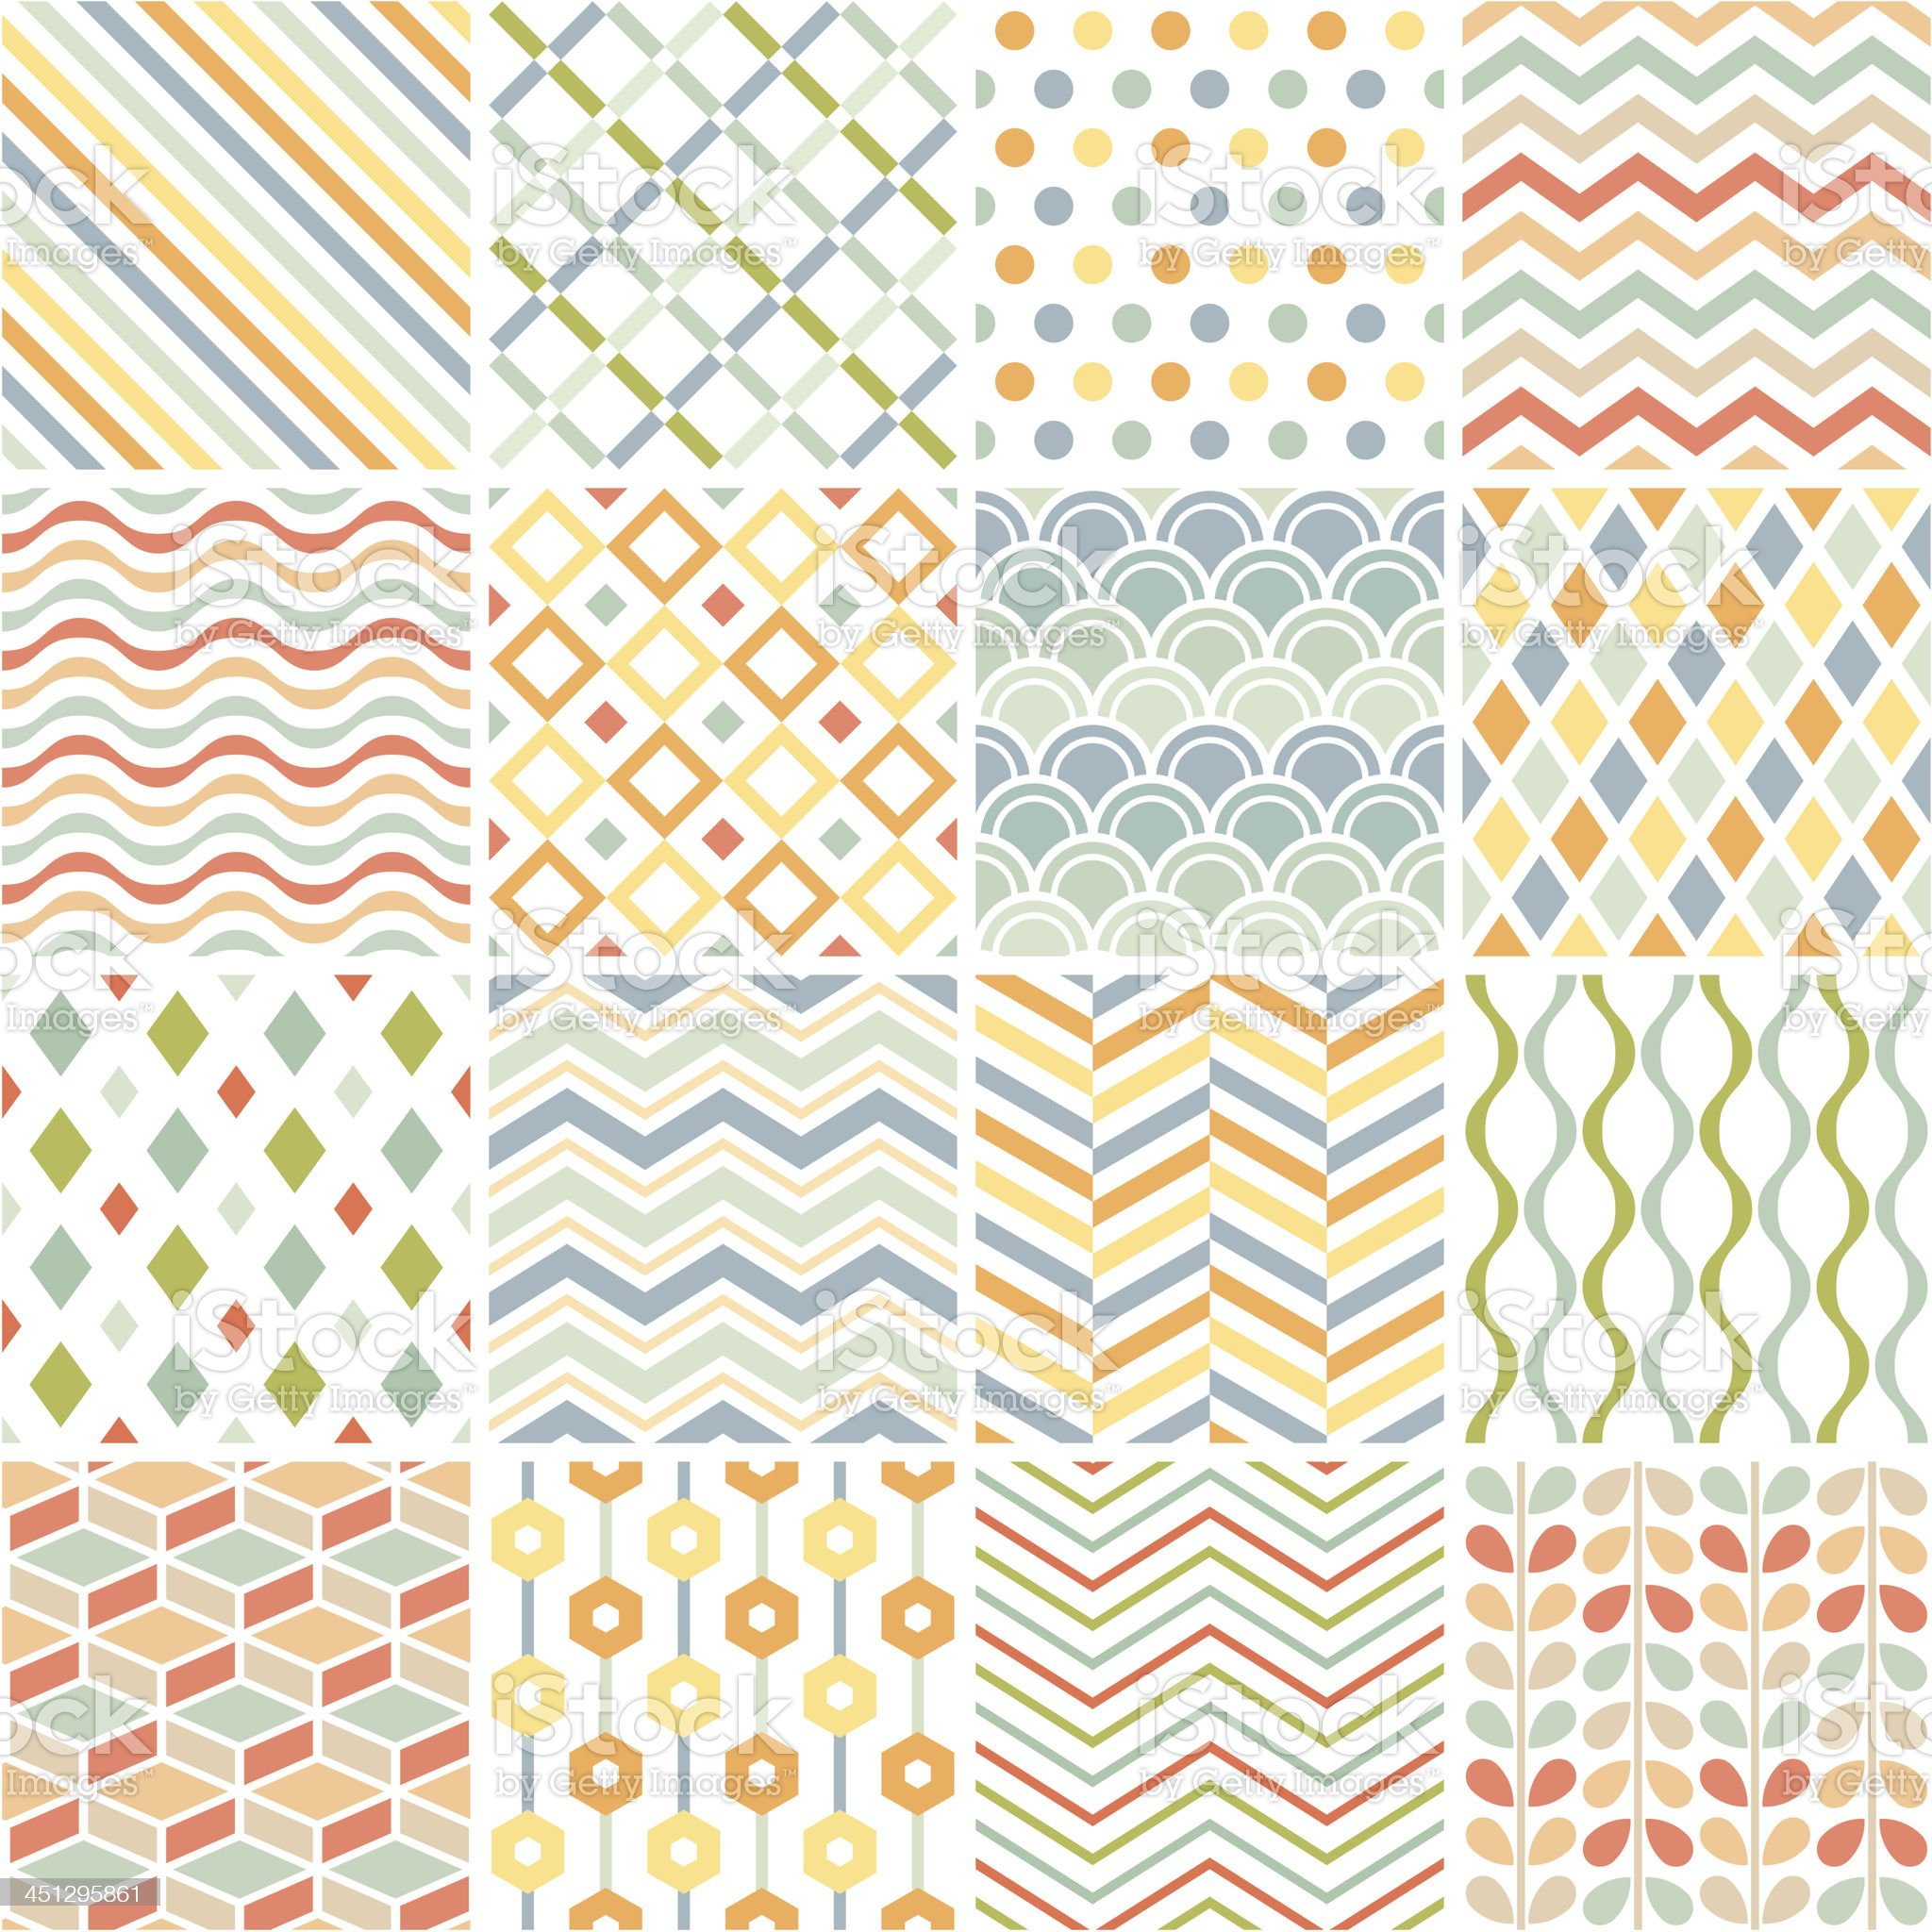 Patchwork of 16 geometric patterns on white royalty-free stock vector art